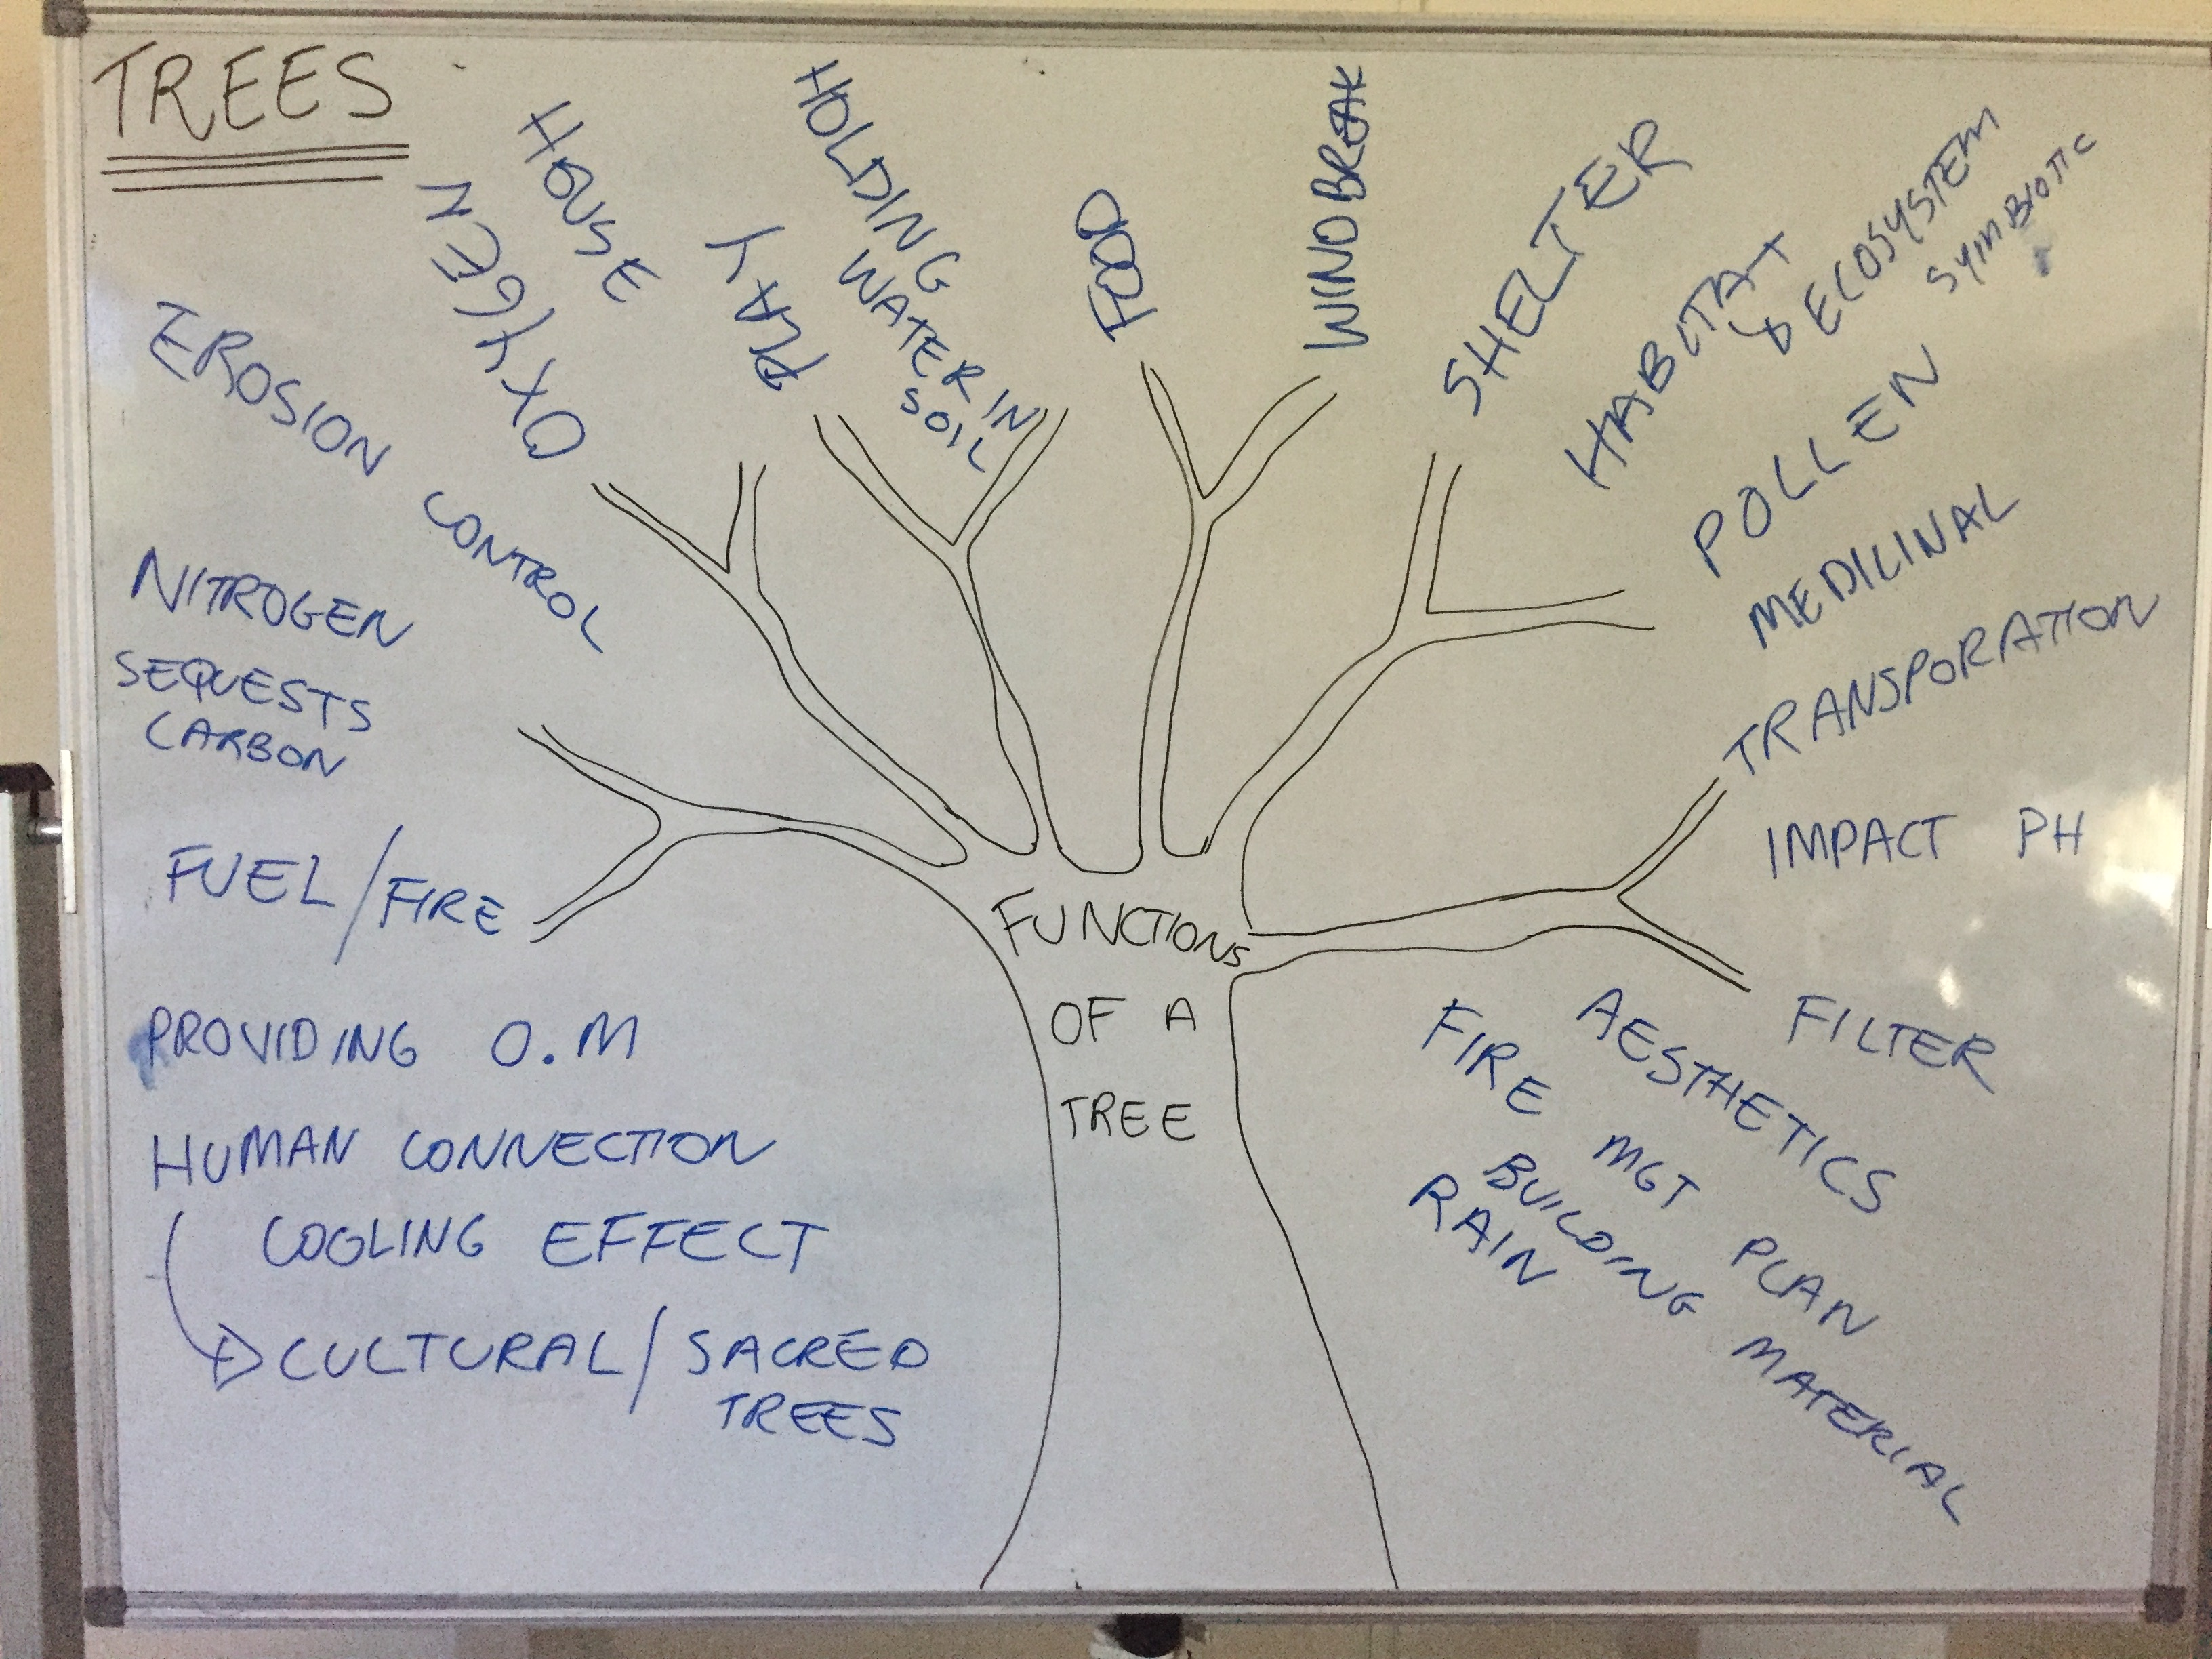 PDC functions of a tree